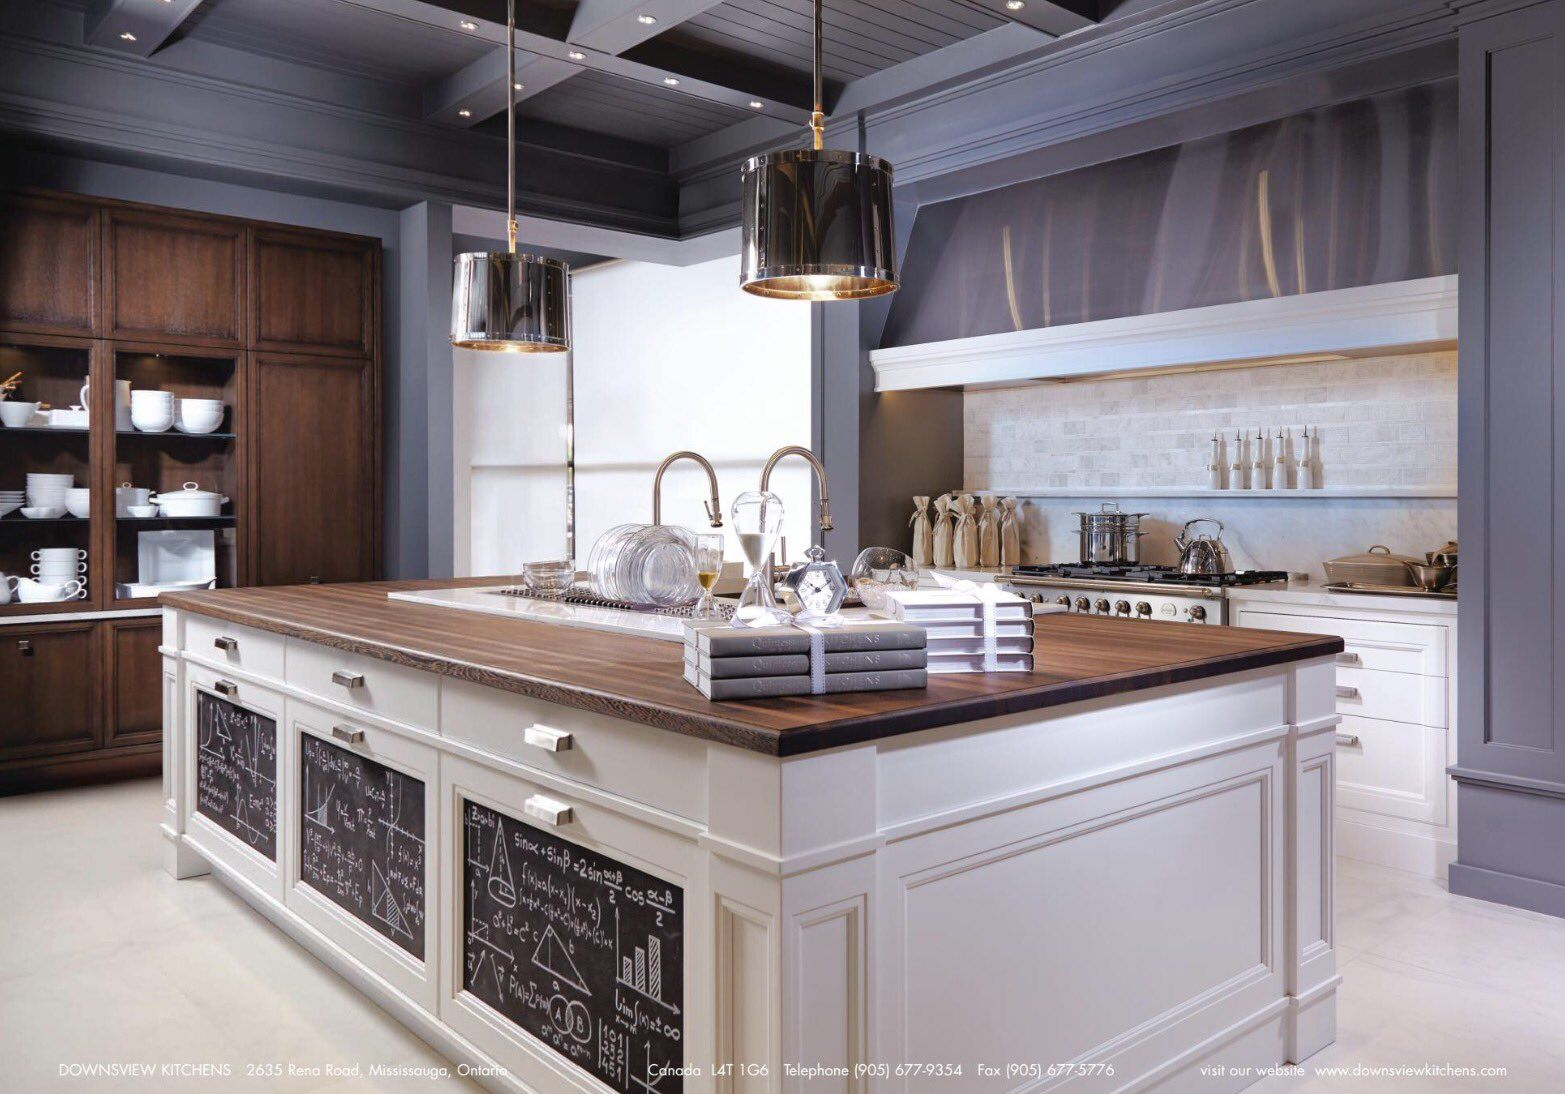 Carina Chicago Realtor on in 2020 Custom kitchen